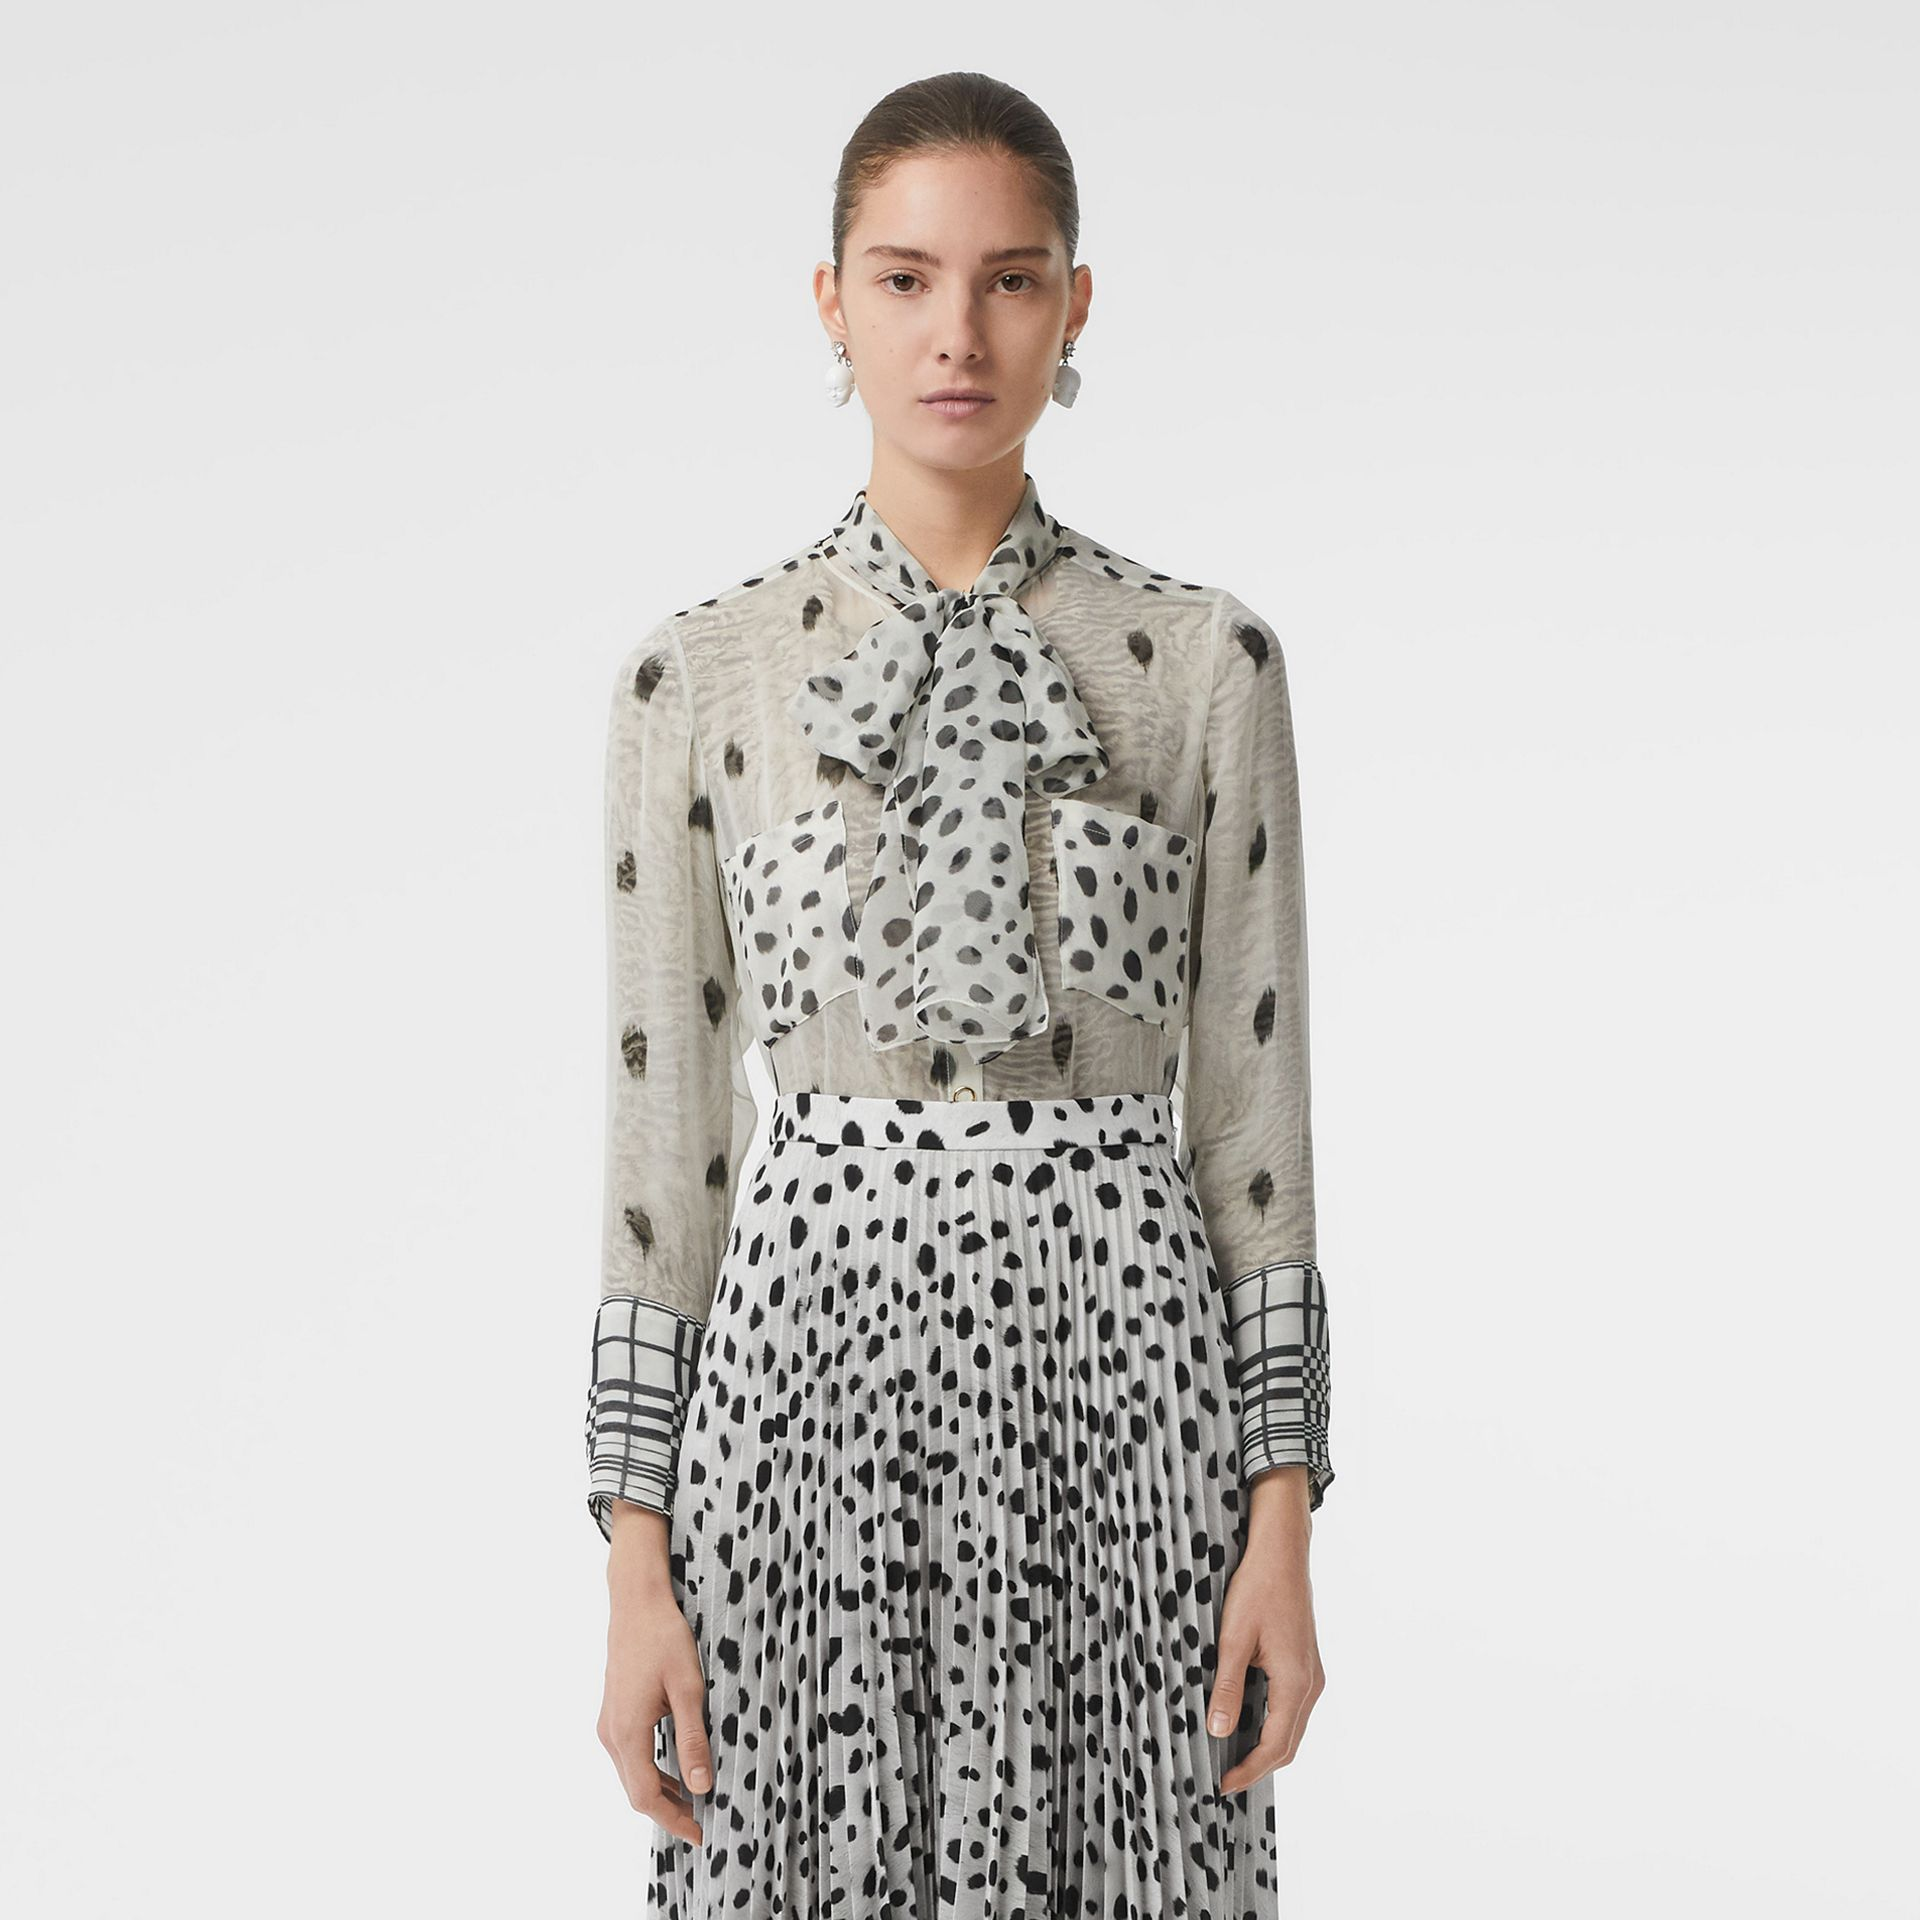 Dalmatian Print Crepe Pleated Skirt in Black/white - Women | Burberry Australia - gallery image 5